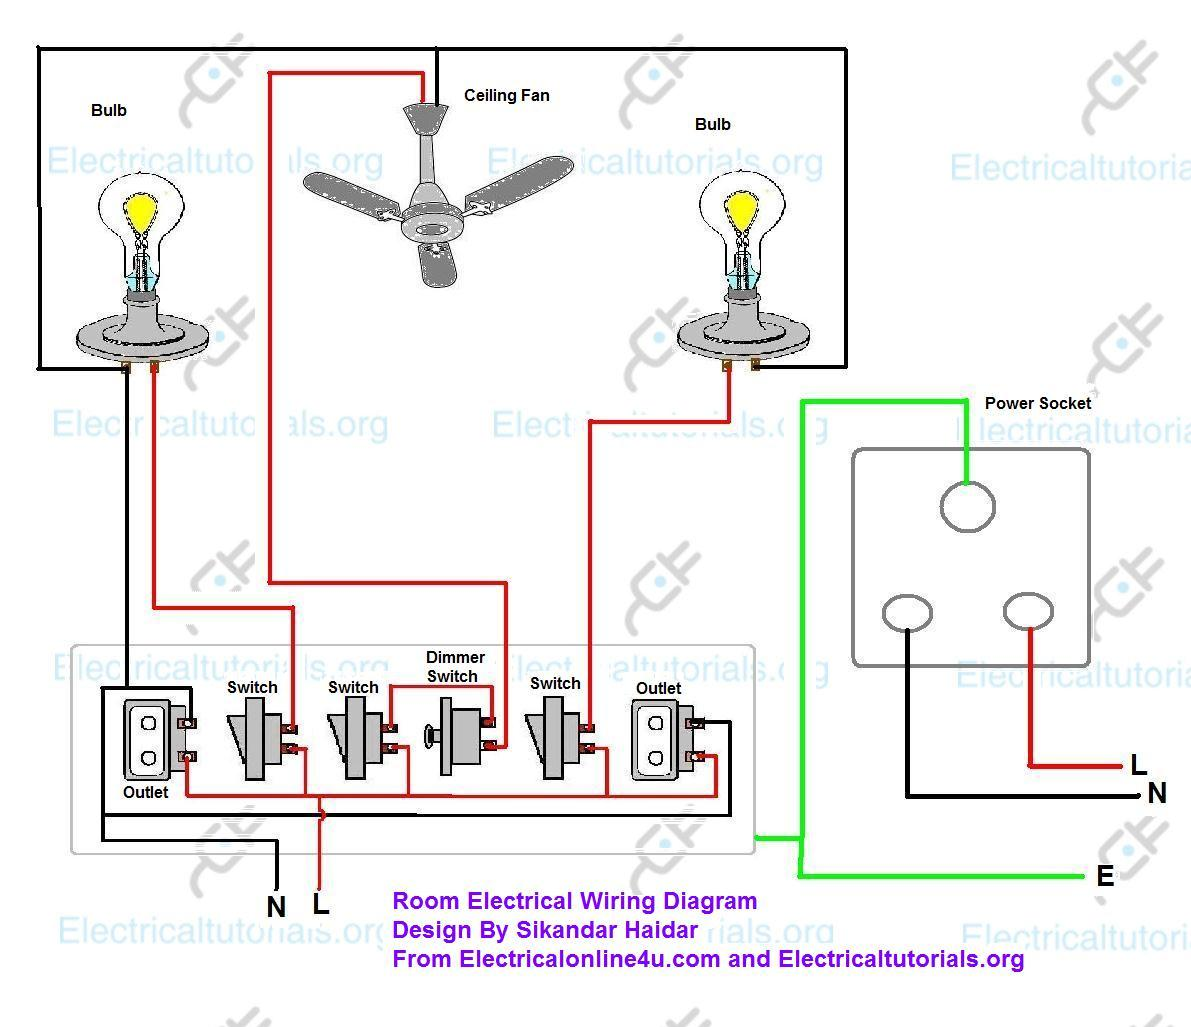 hight resolution of room wiring diagram wiring diagram home wiring diagram for room stat wiring diagram for room